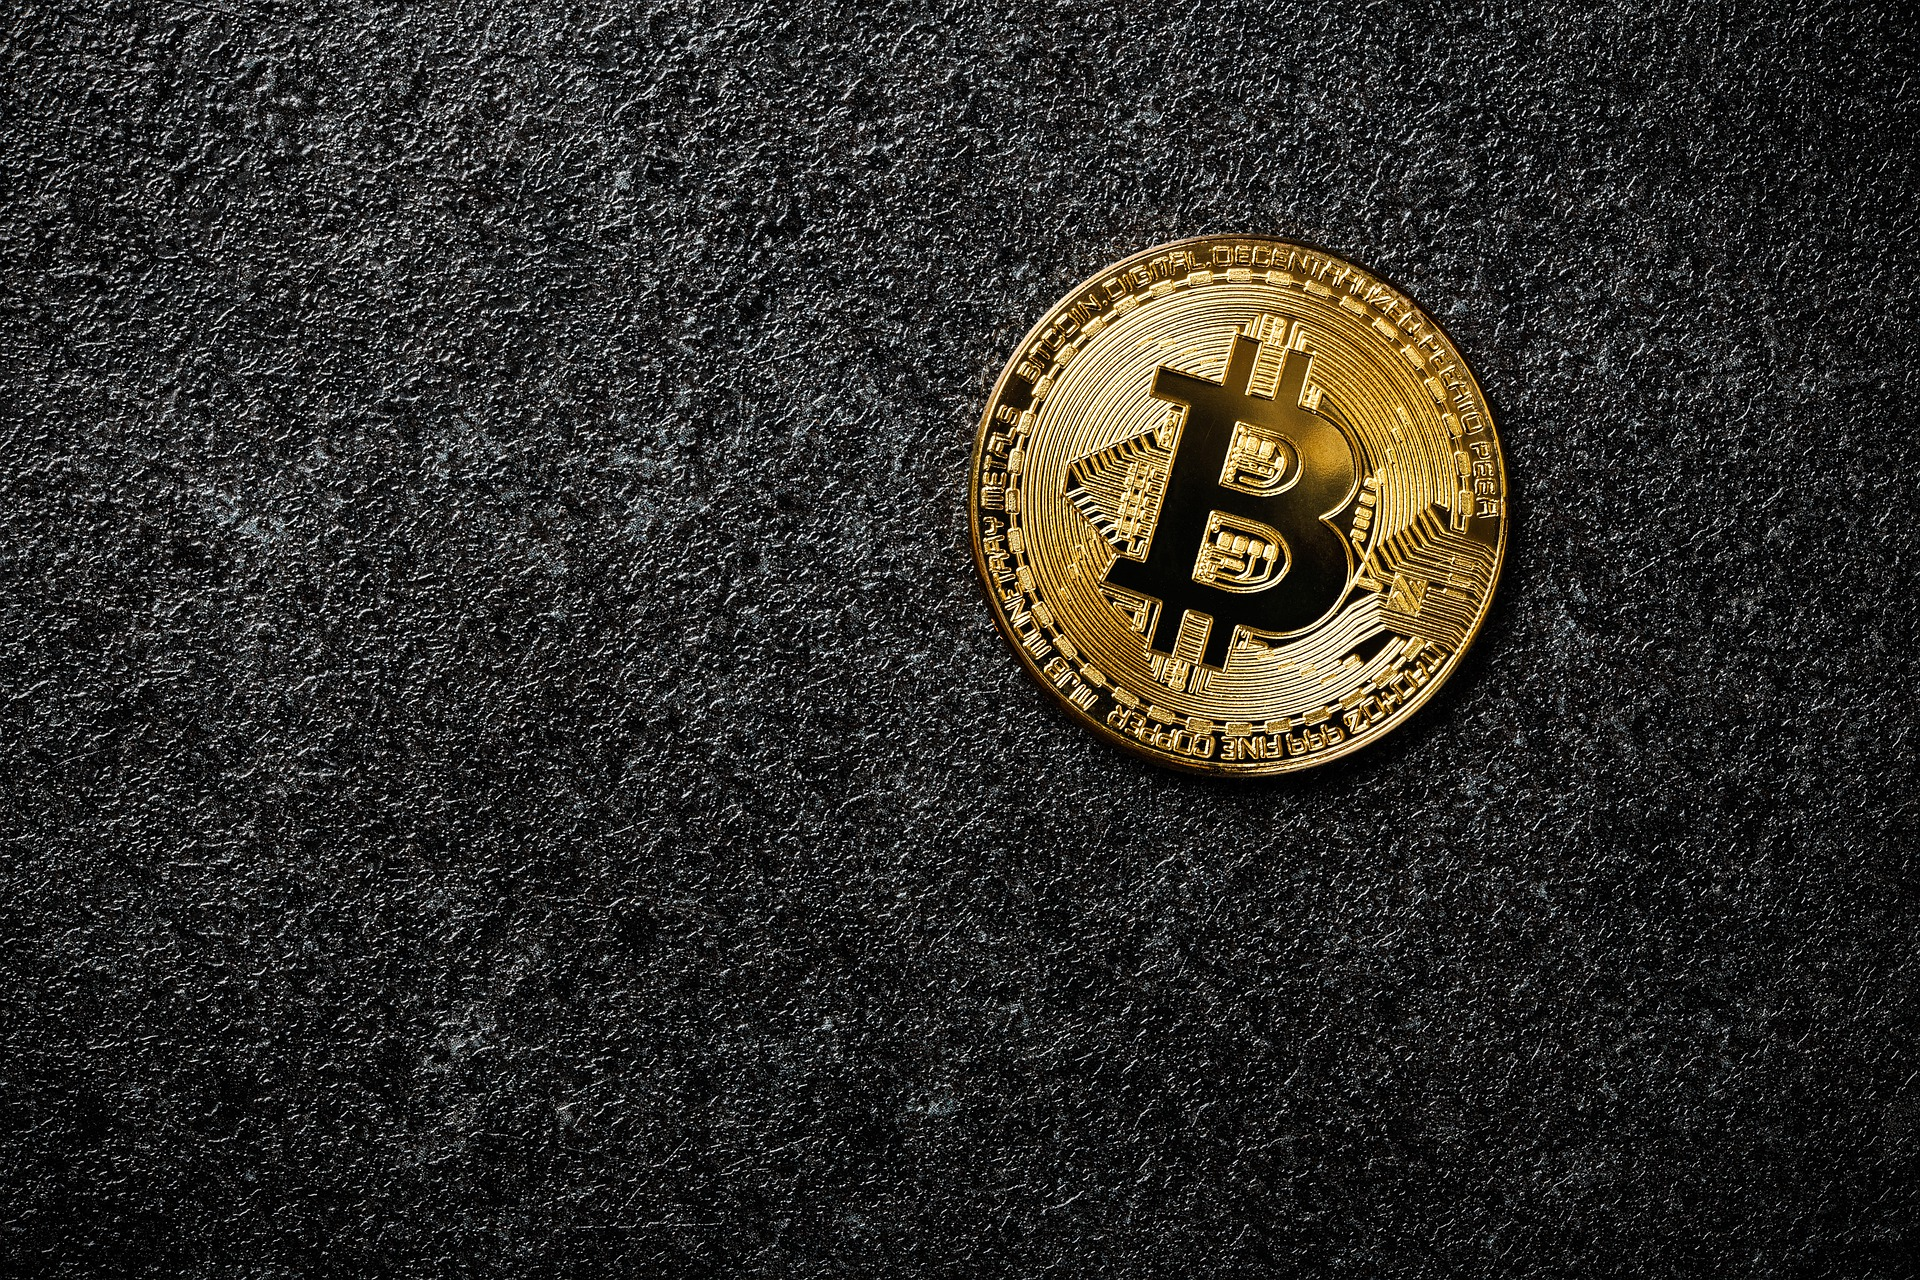 How To Buy Bitcoin?: Important Things To Consider Before Buying Bitcoin